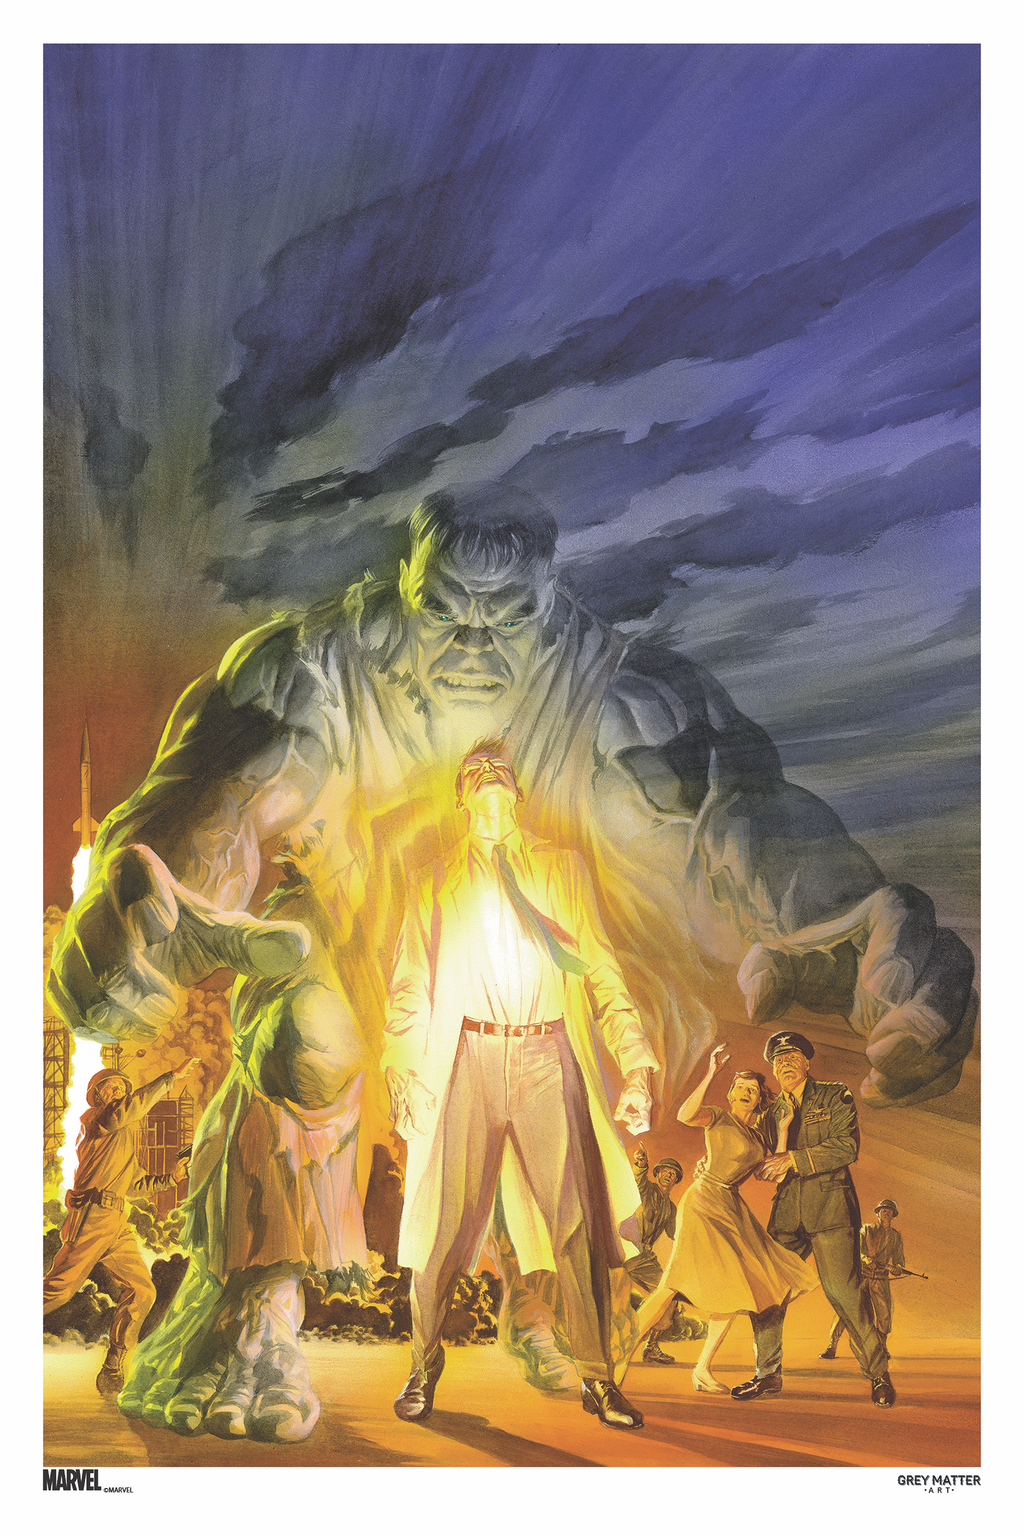 The Immortal Hulk #20 (Variant) Cover Art by Alex Ross